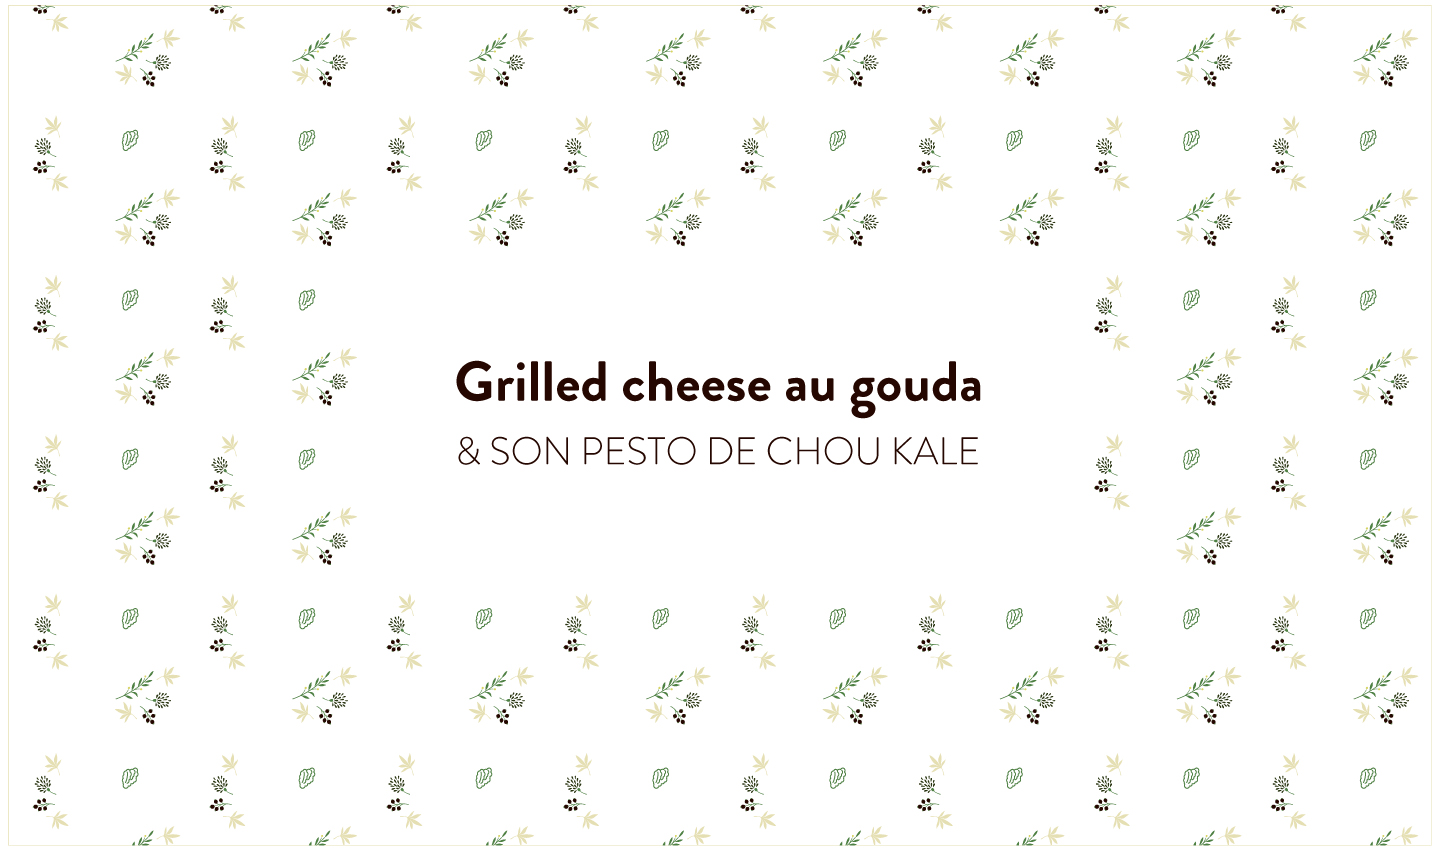 motifs-2016-automne-grilled-cheese